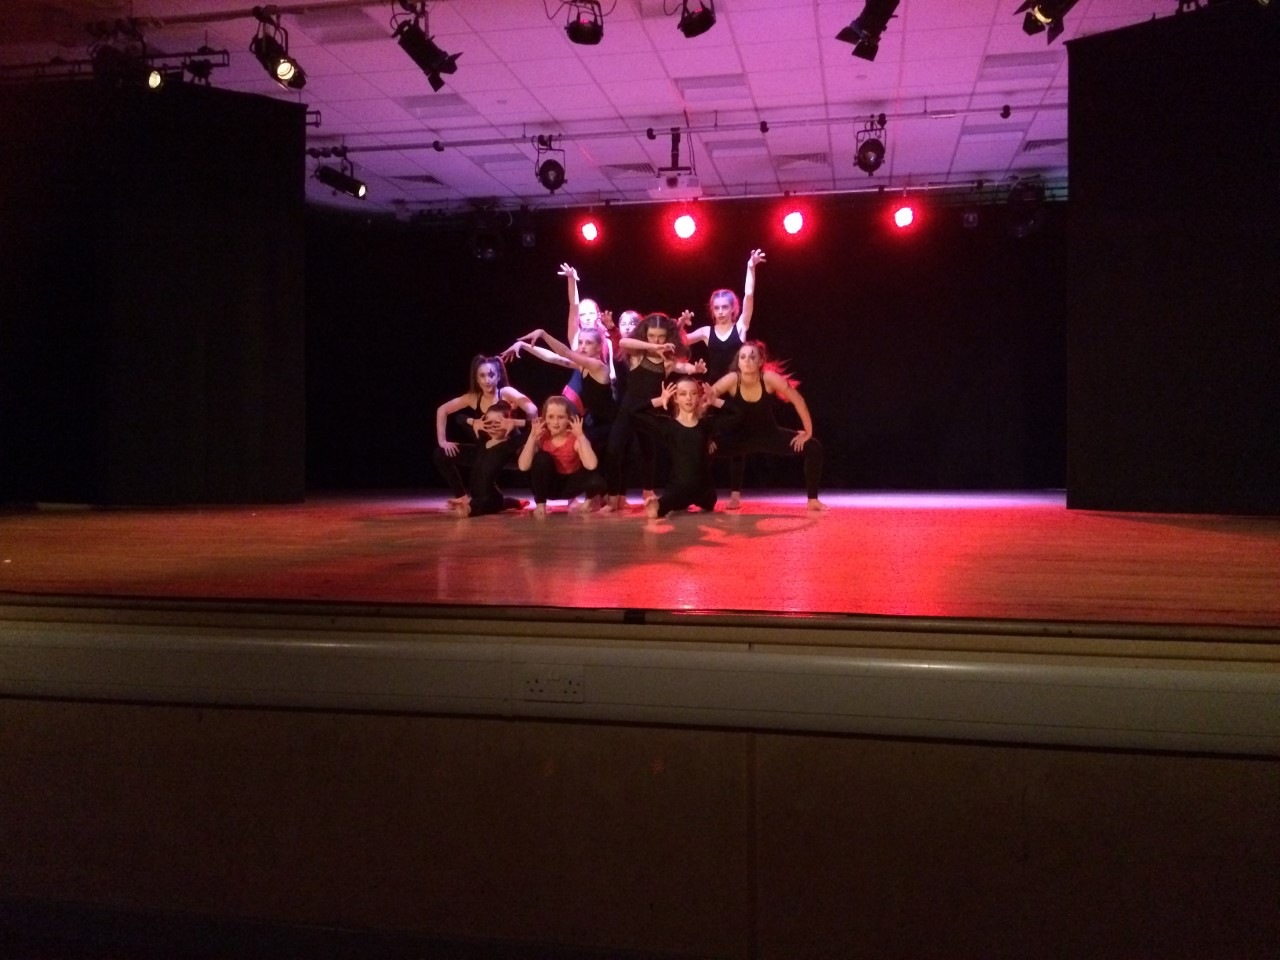 KS3       1st Ralph Thoresby WYWG    2nd Leeds East Academy    3rd Abbey Grange      Best Student Led Choreography: Brigshaw     KS4       1st Temple Moor (WYSG) & Brigshaw    3rd St Mary's